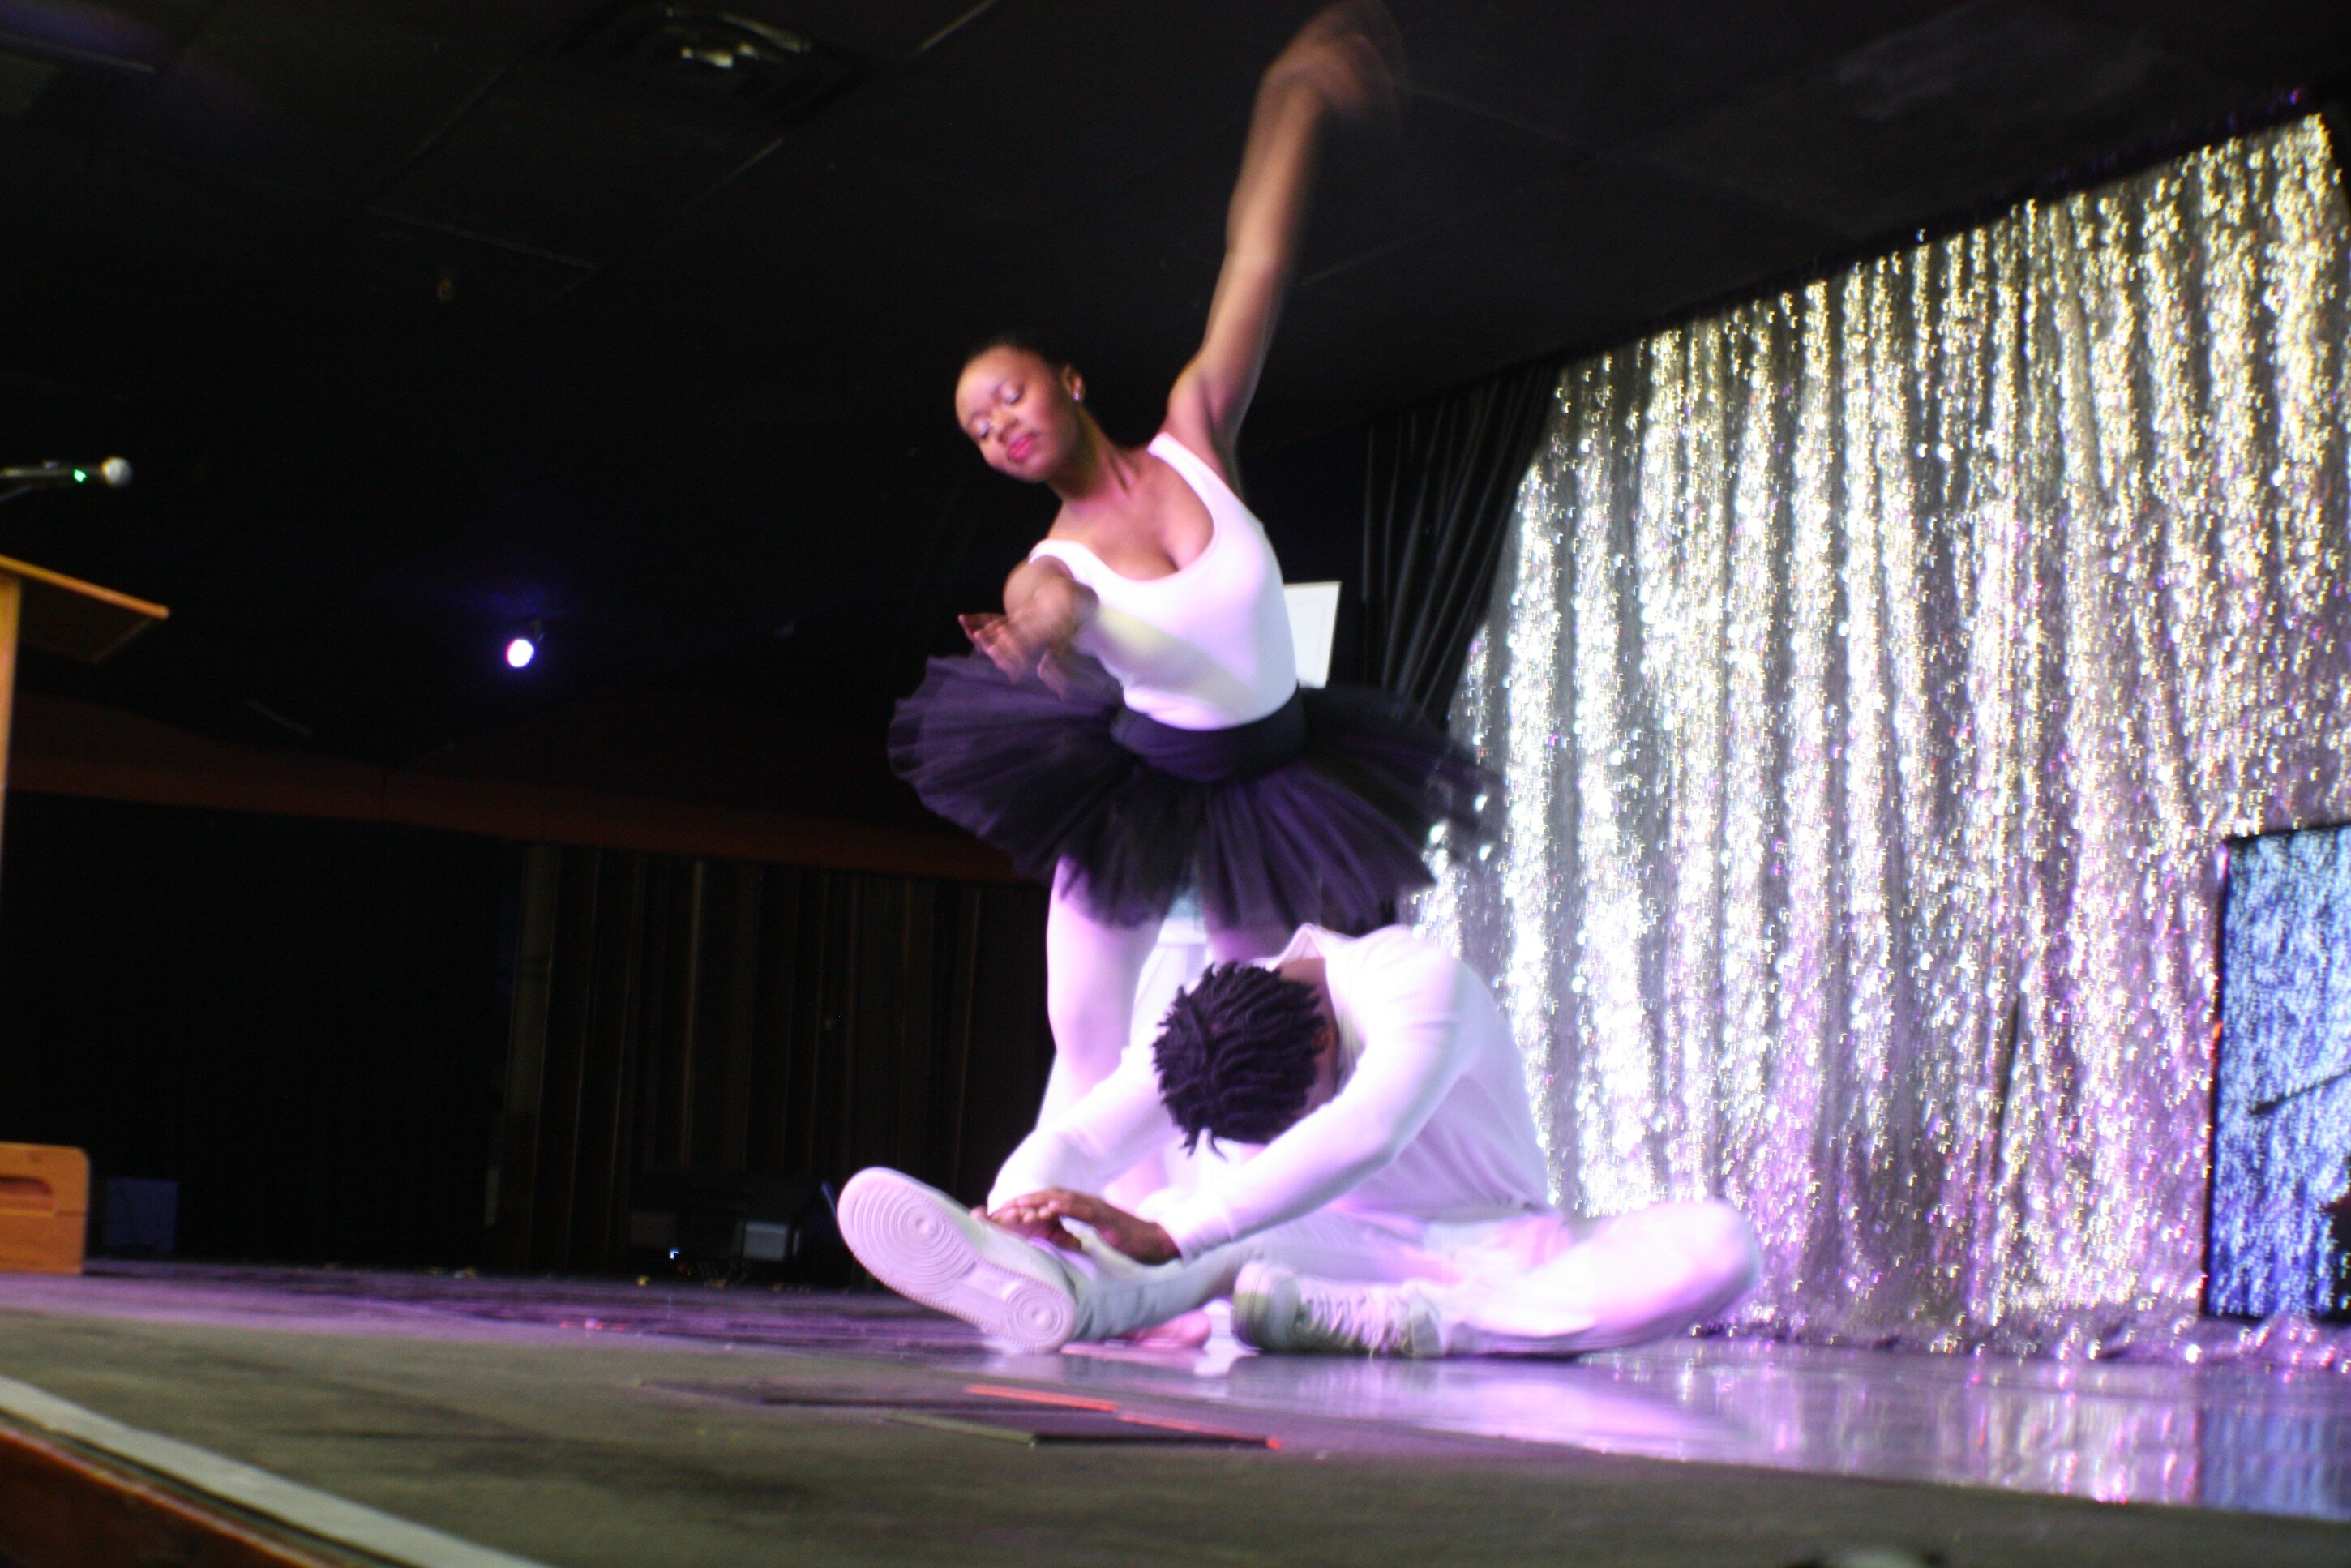 The 2020 Trailblazer Awards featured a performance by the New Ballet Ensemble and School. The performance fused traditional ballet with Memphis Jookin. (Cole Bradley)